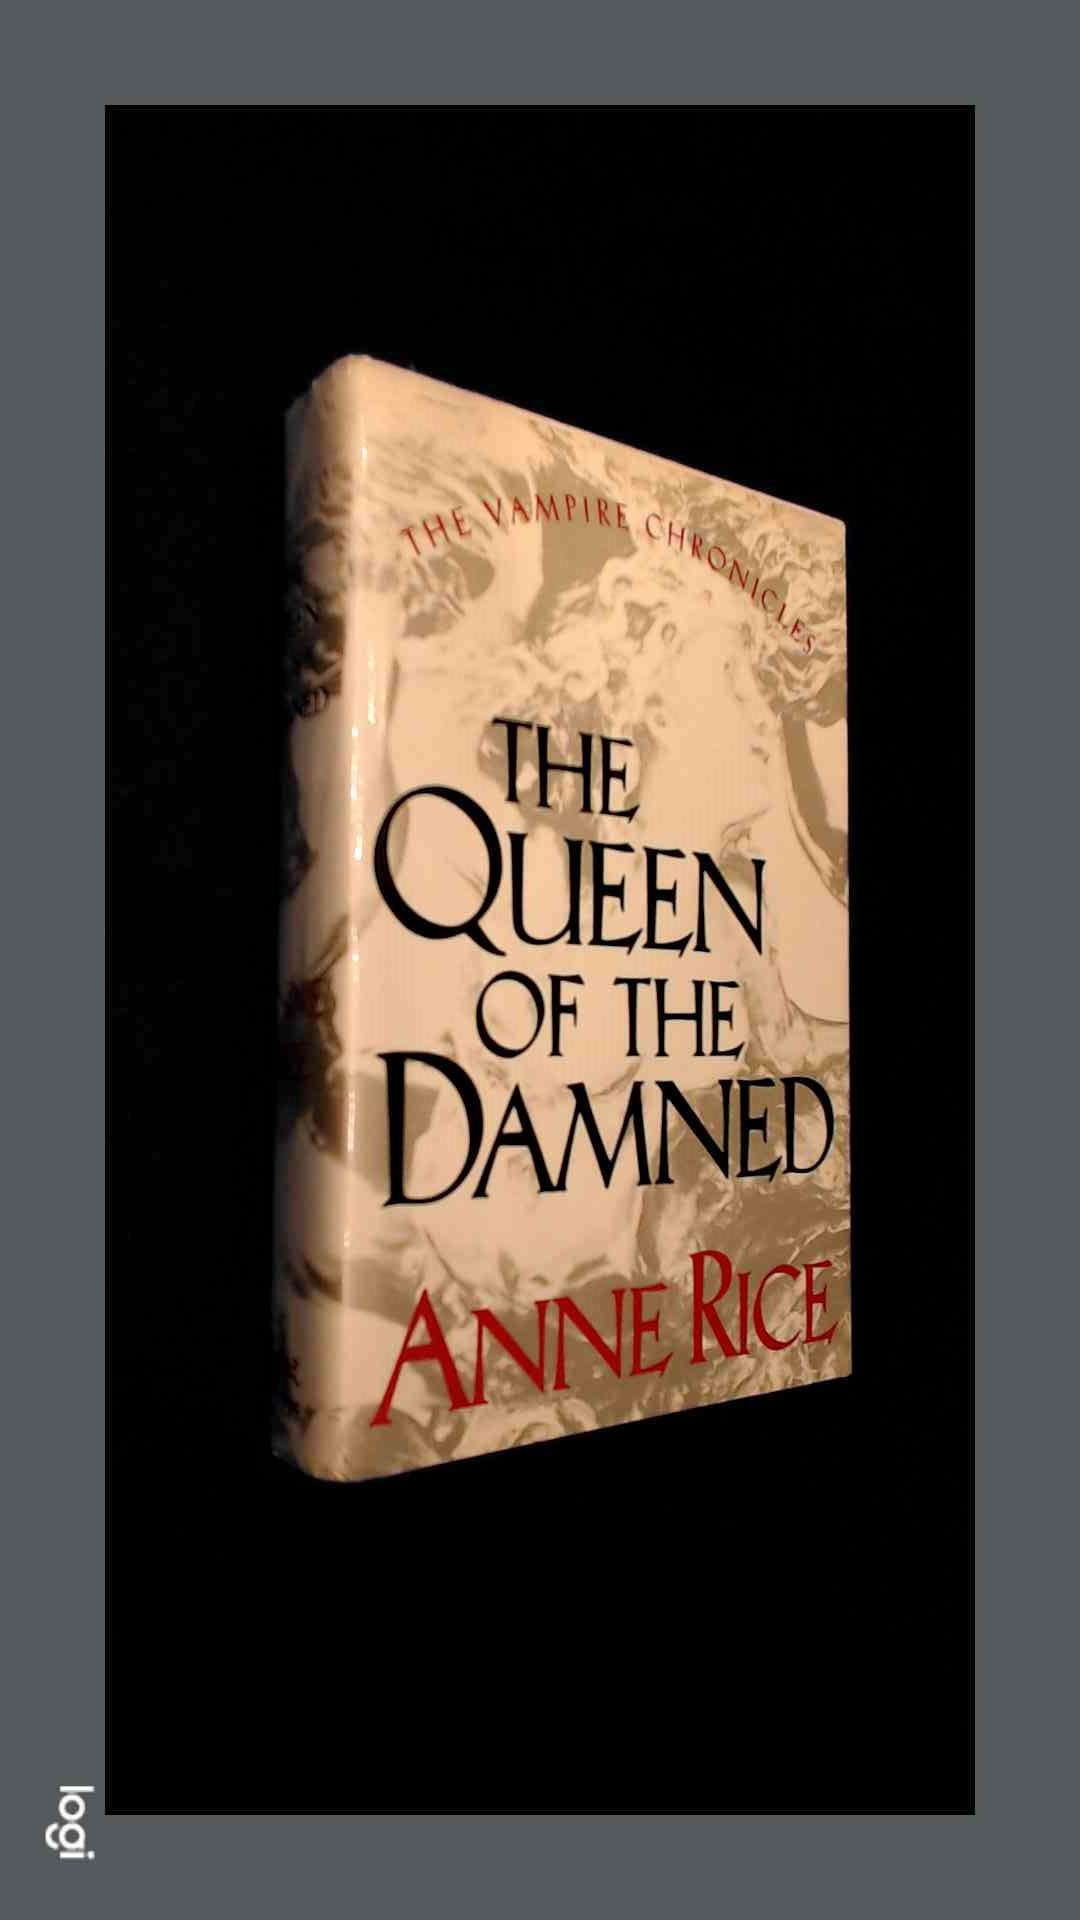 RICE, ANNE - The Queen of the damned